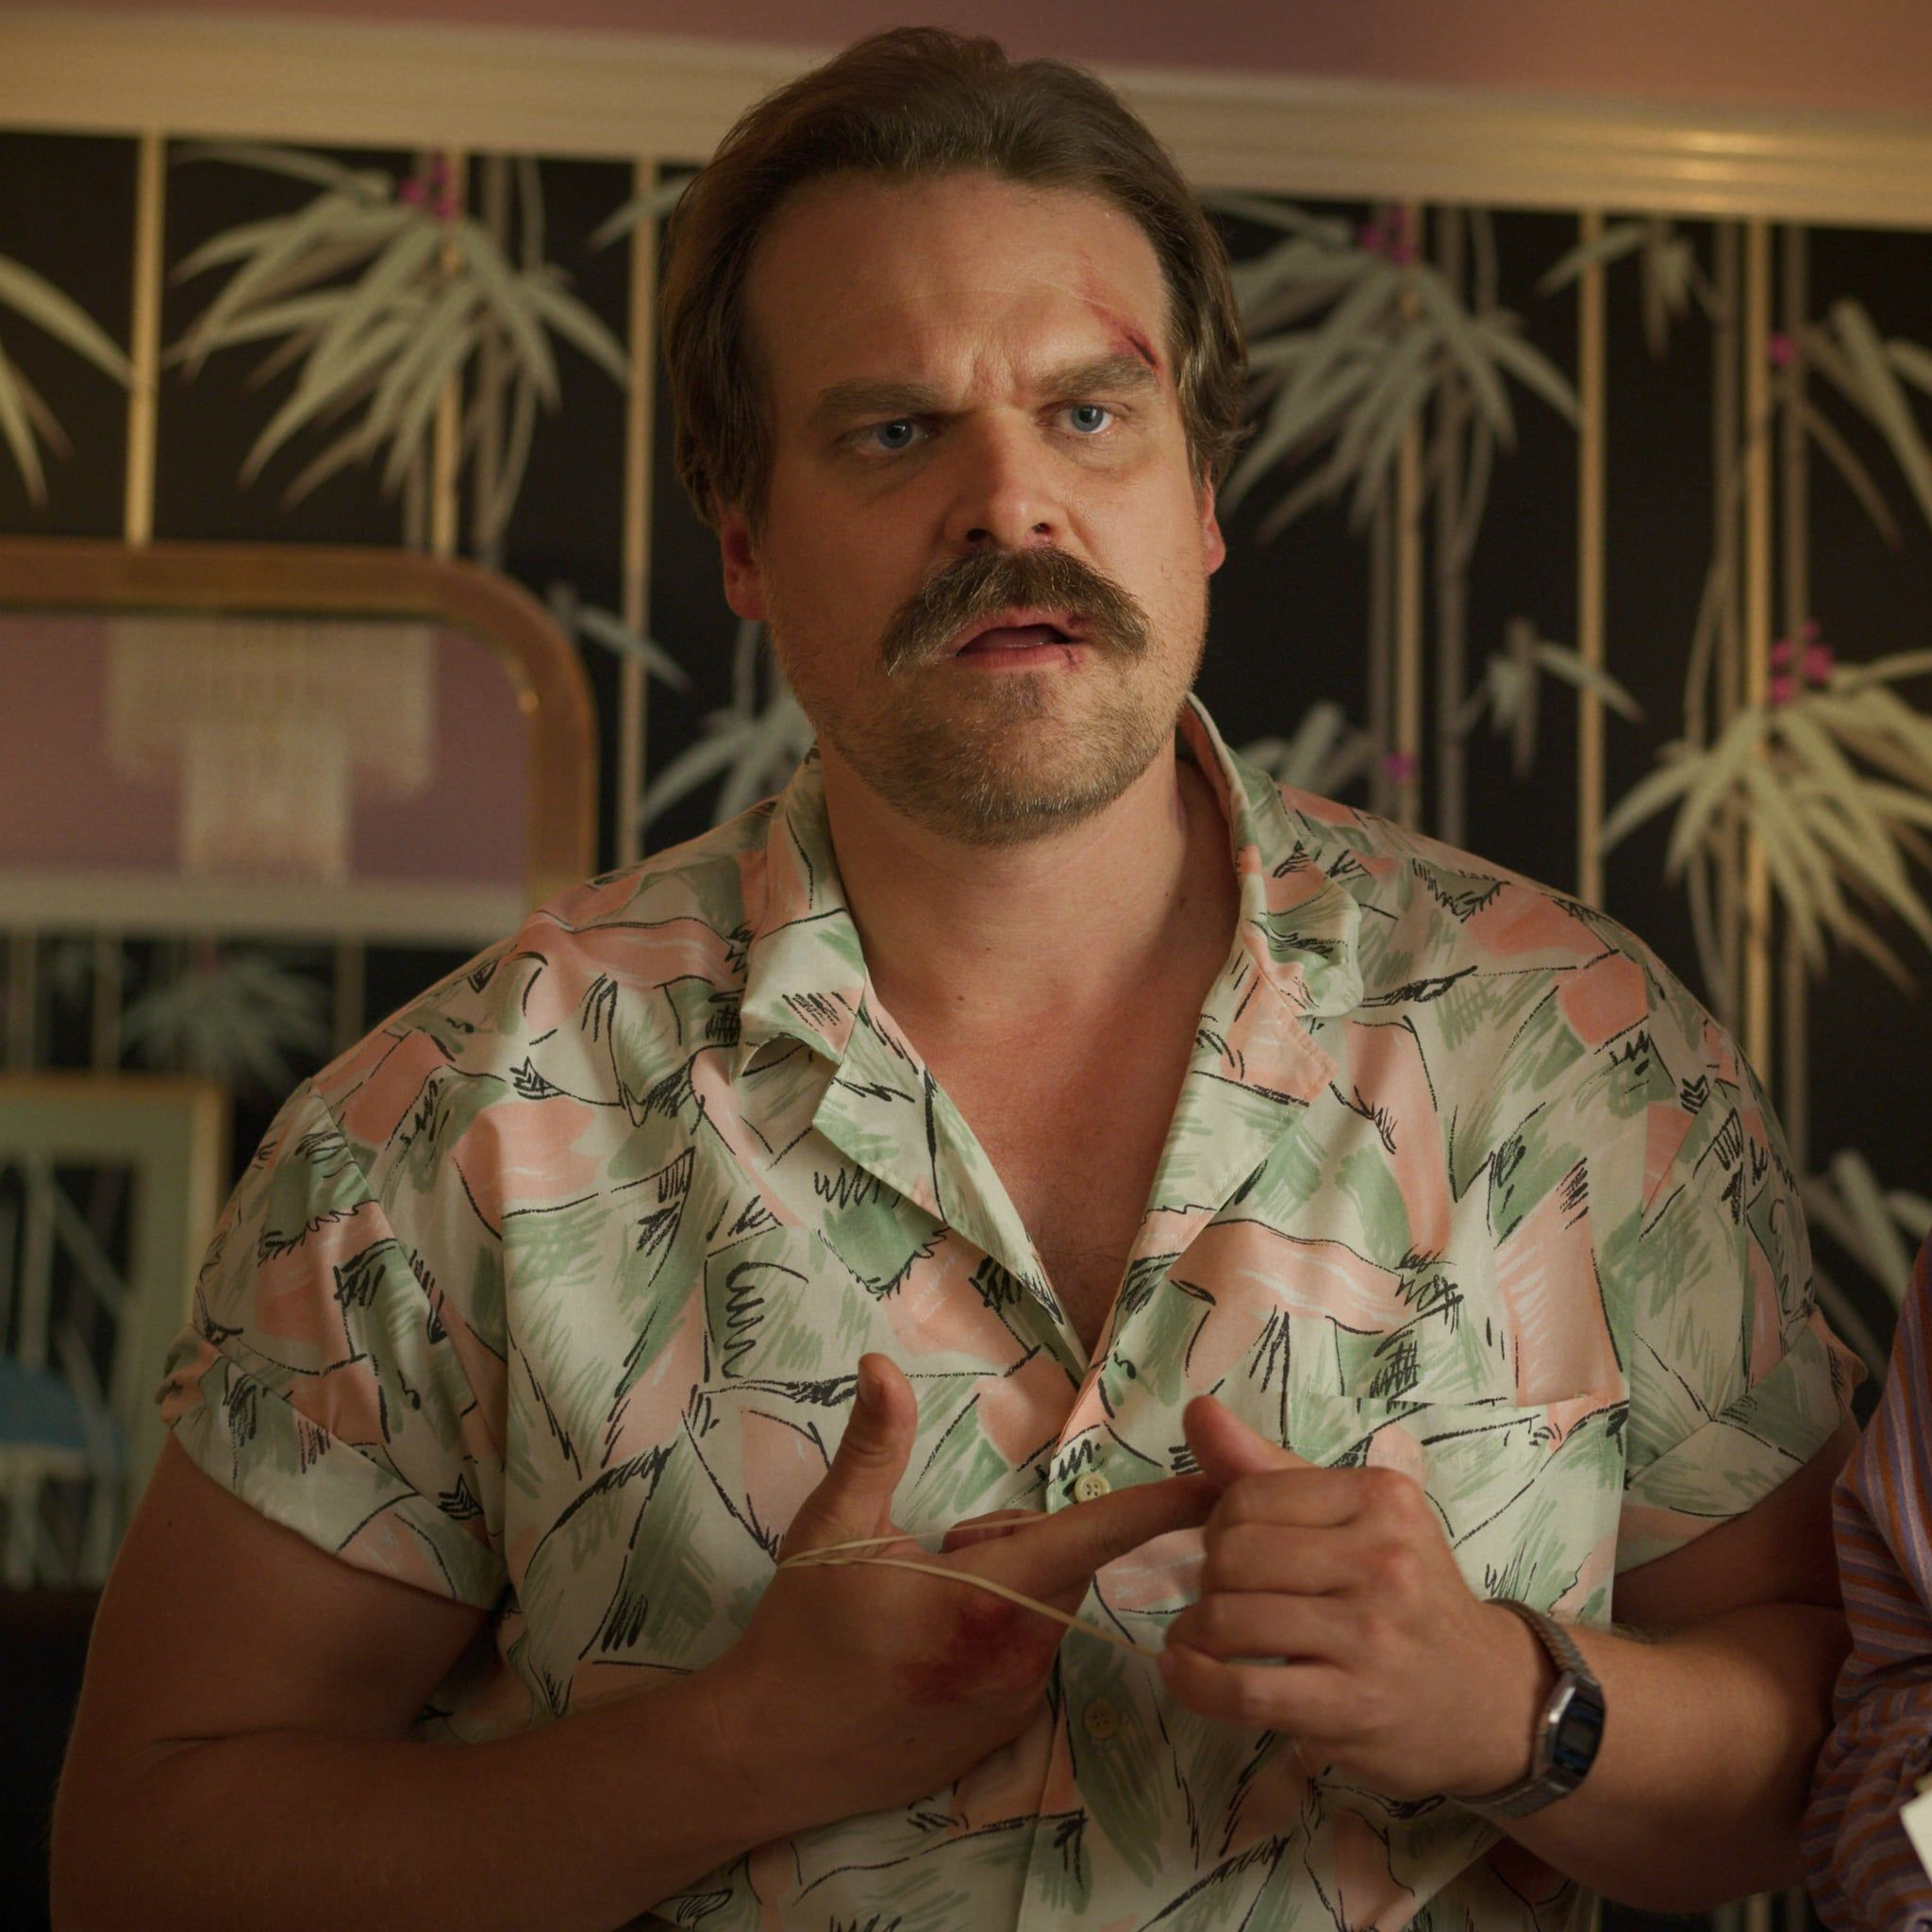 fashion style prezzi incredibili come comprare La camicia uomo hawaiana dell'estate 2019 è in Stranger Things 3